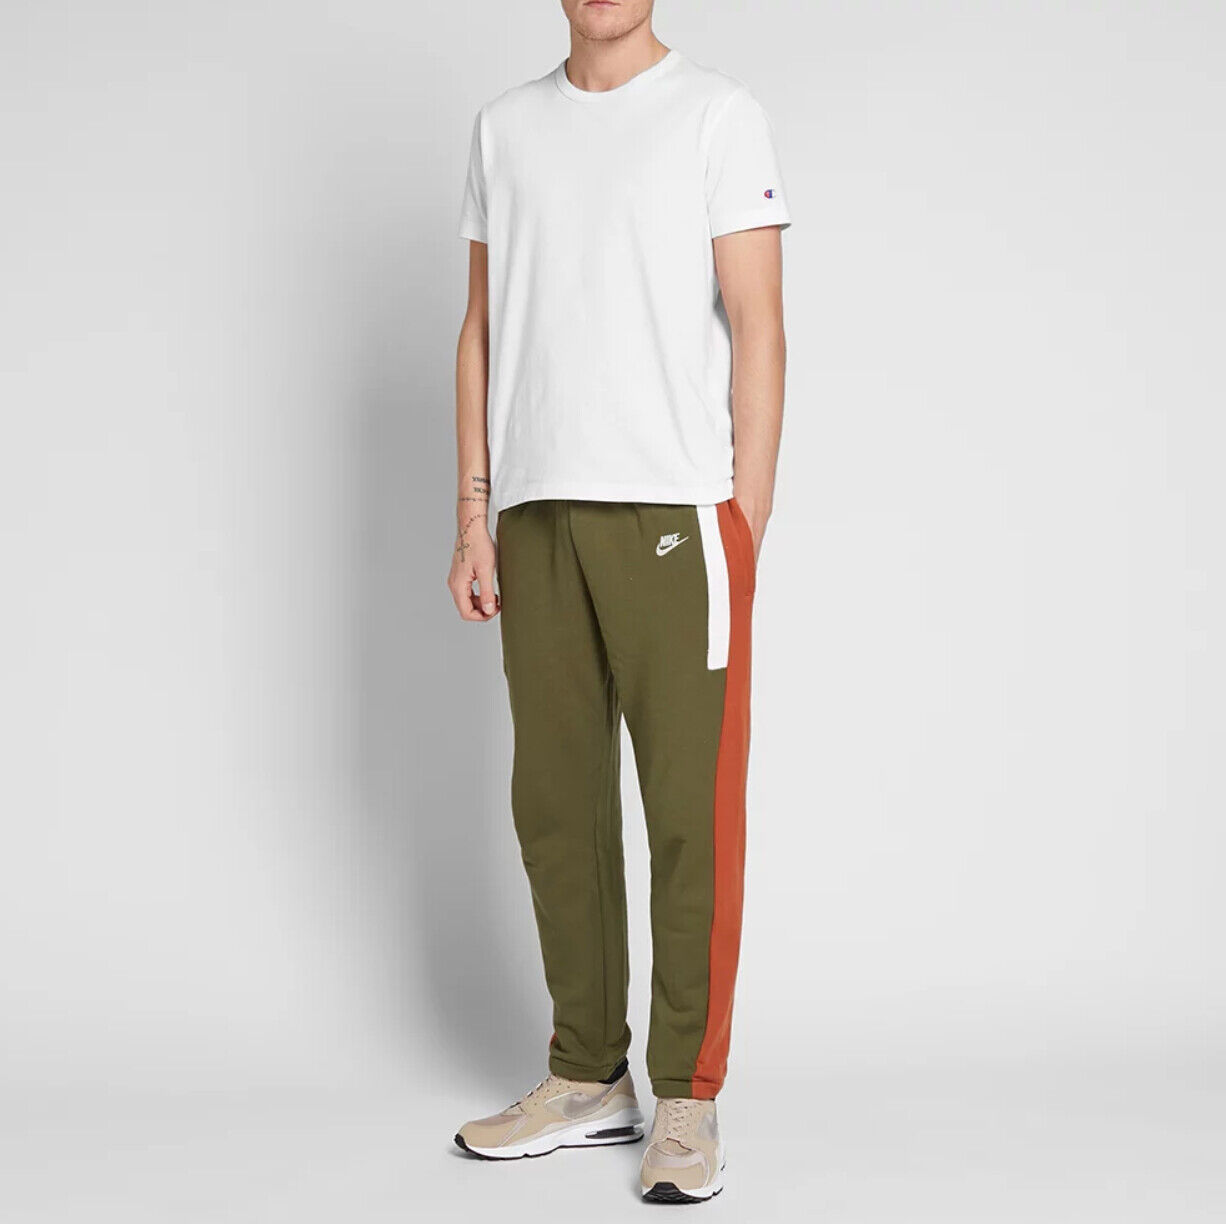 Nike Re-Issue Fleece Joggers Sweatpants Olive Green Men's AQ